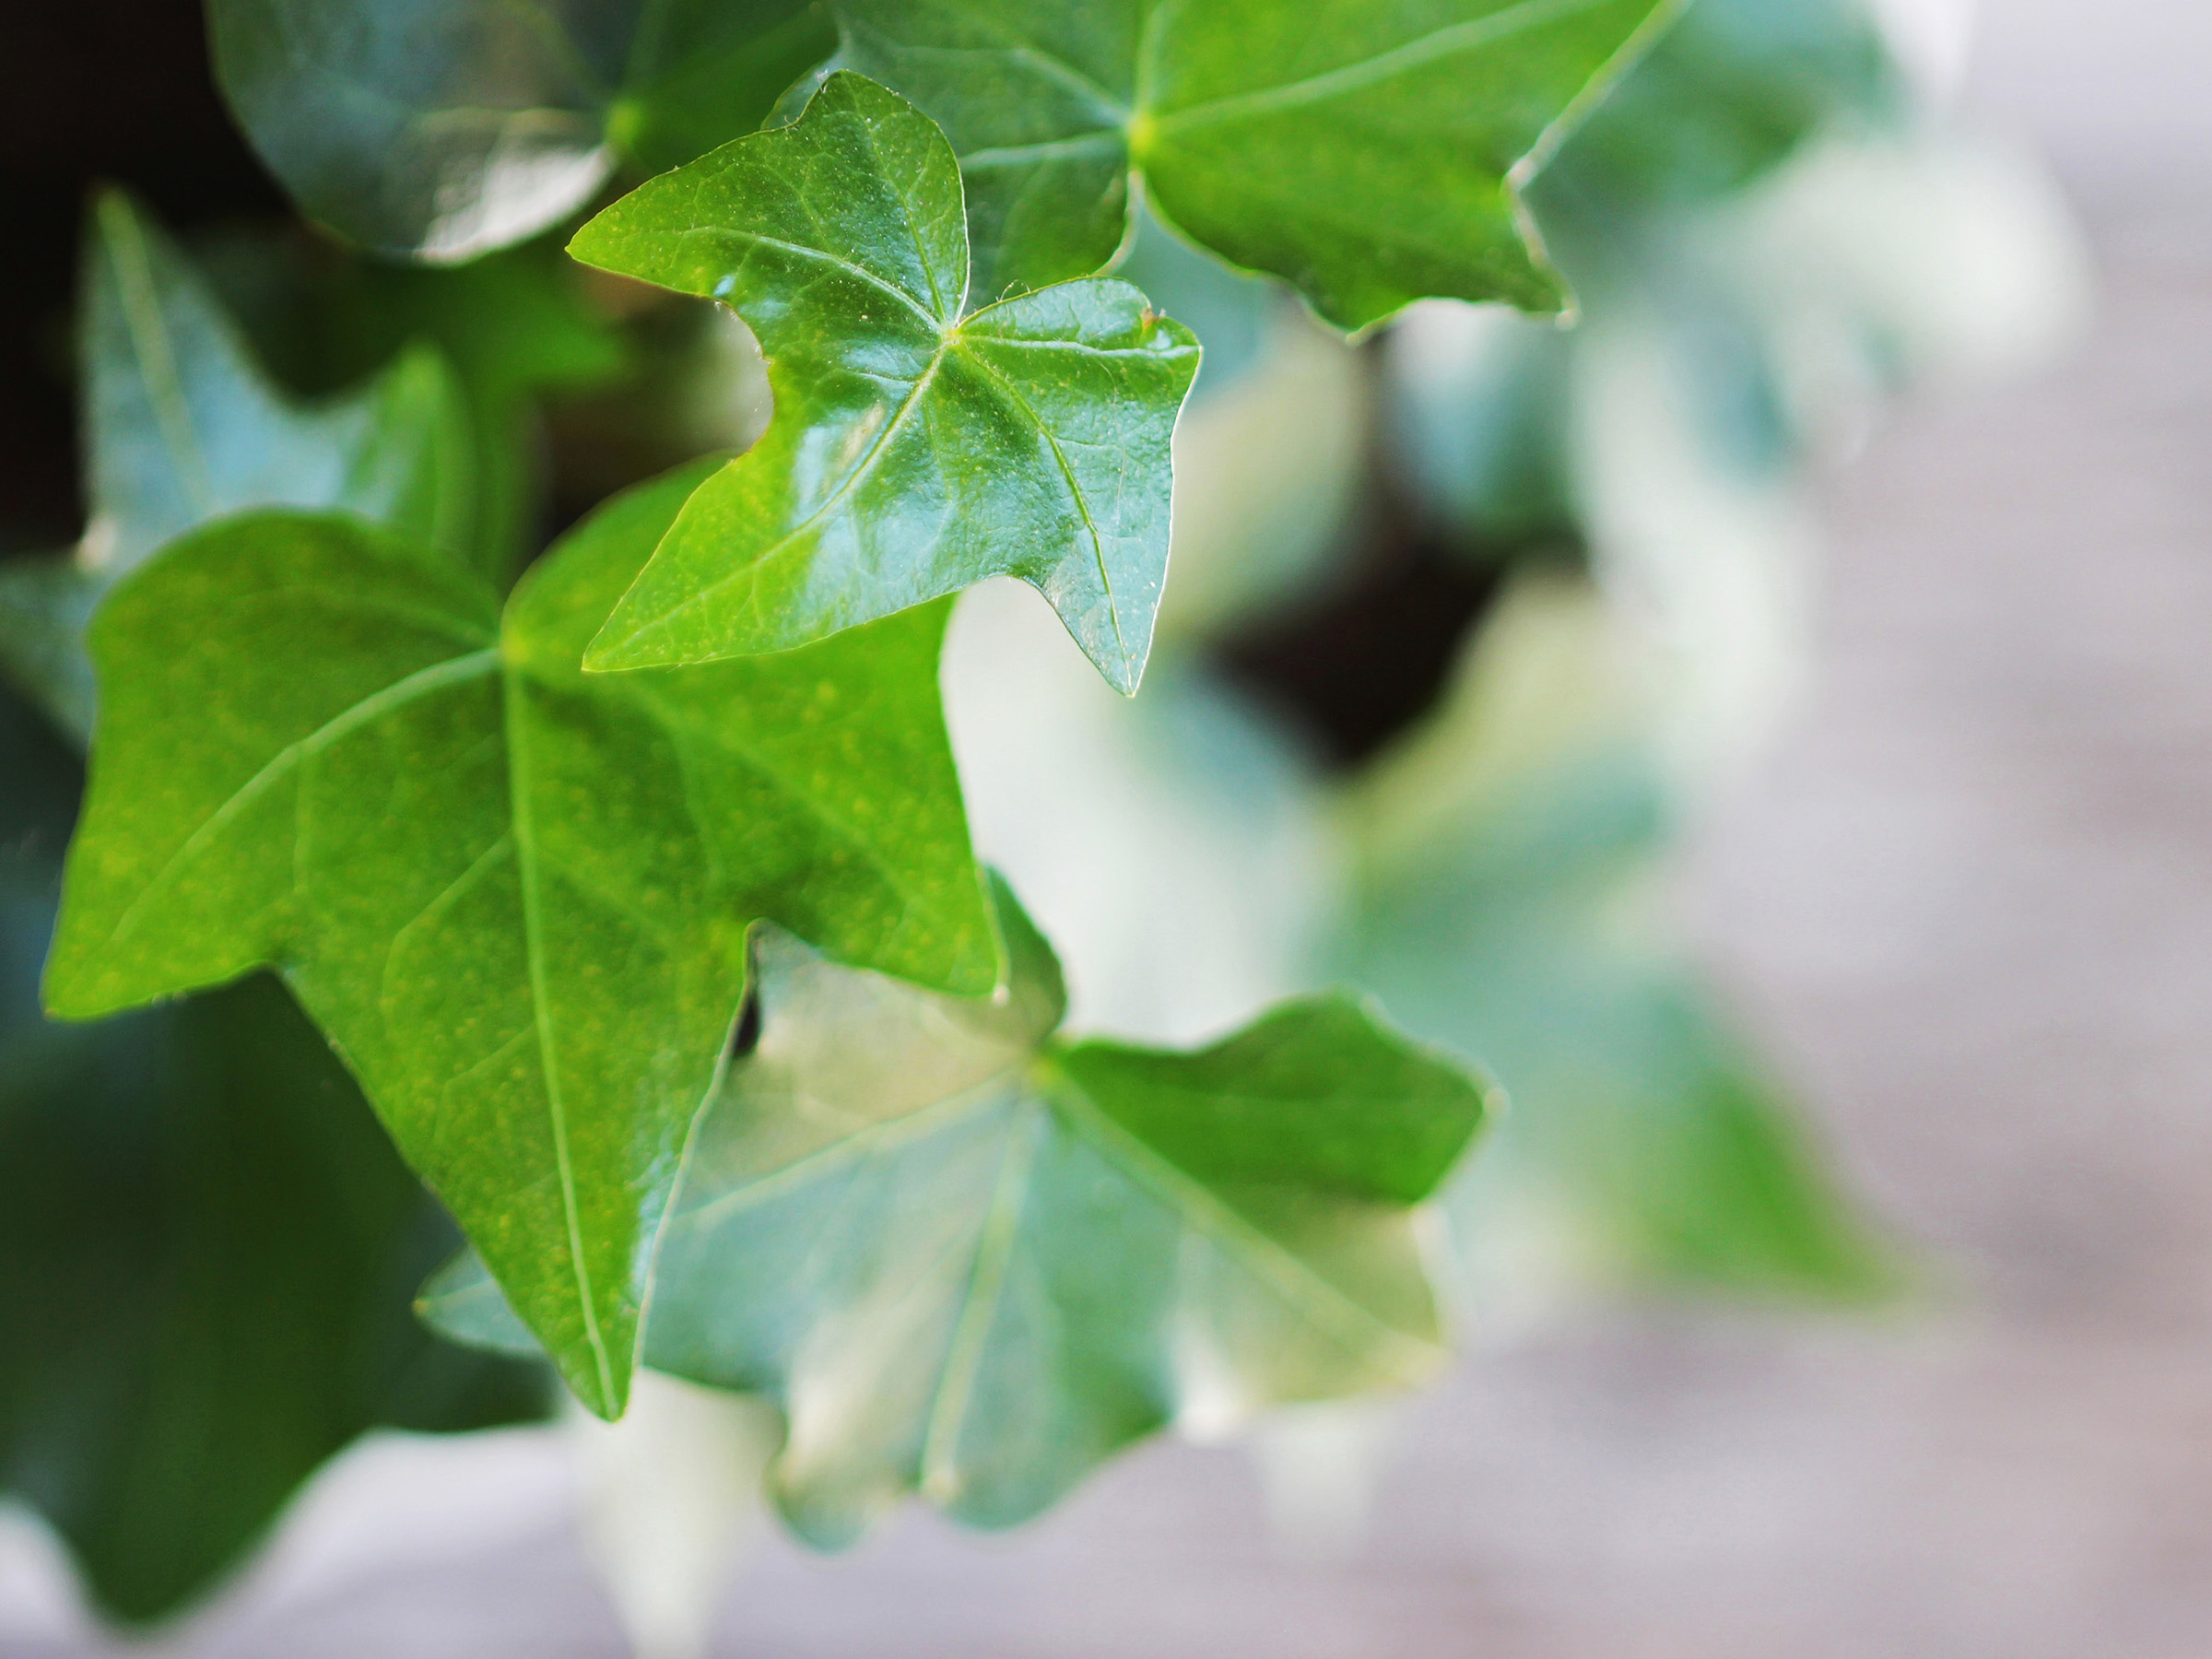 Leaves of English ivy plant